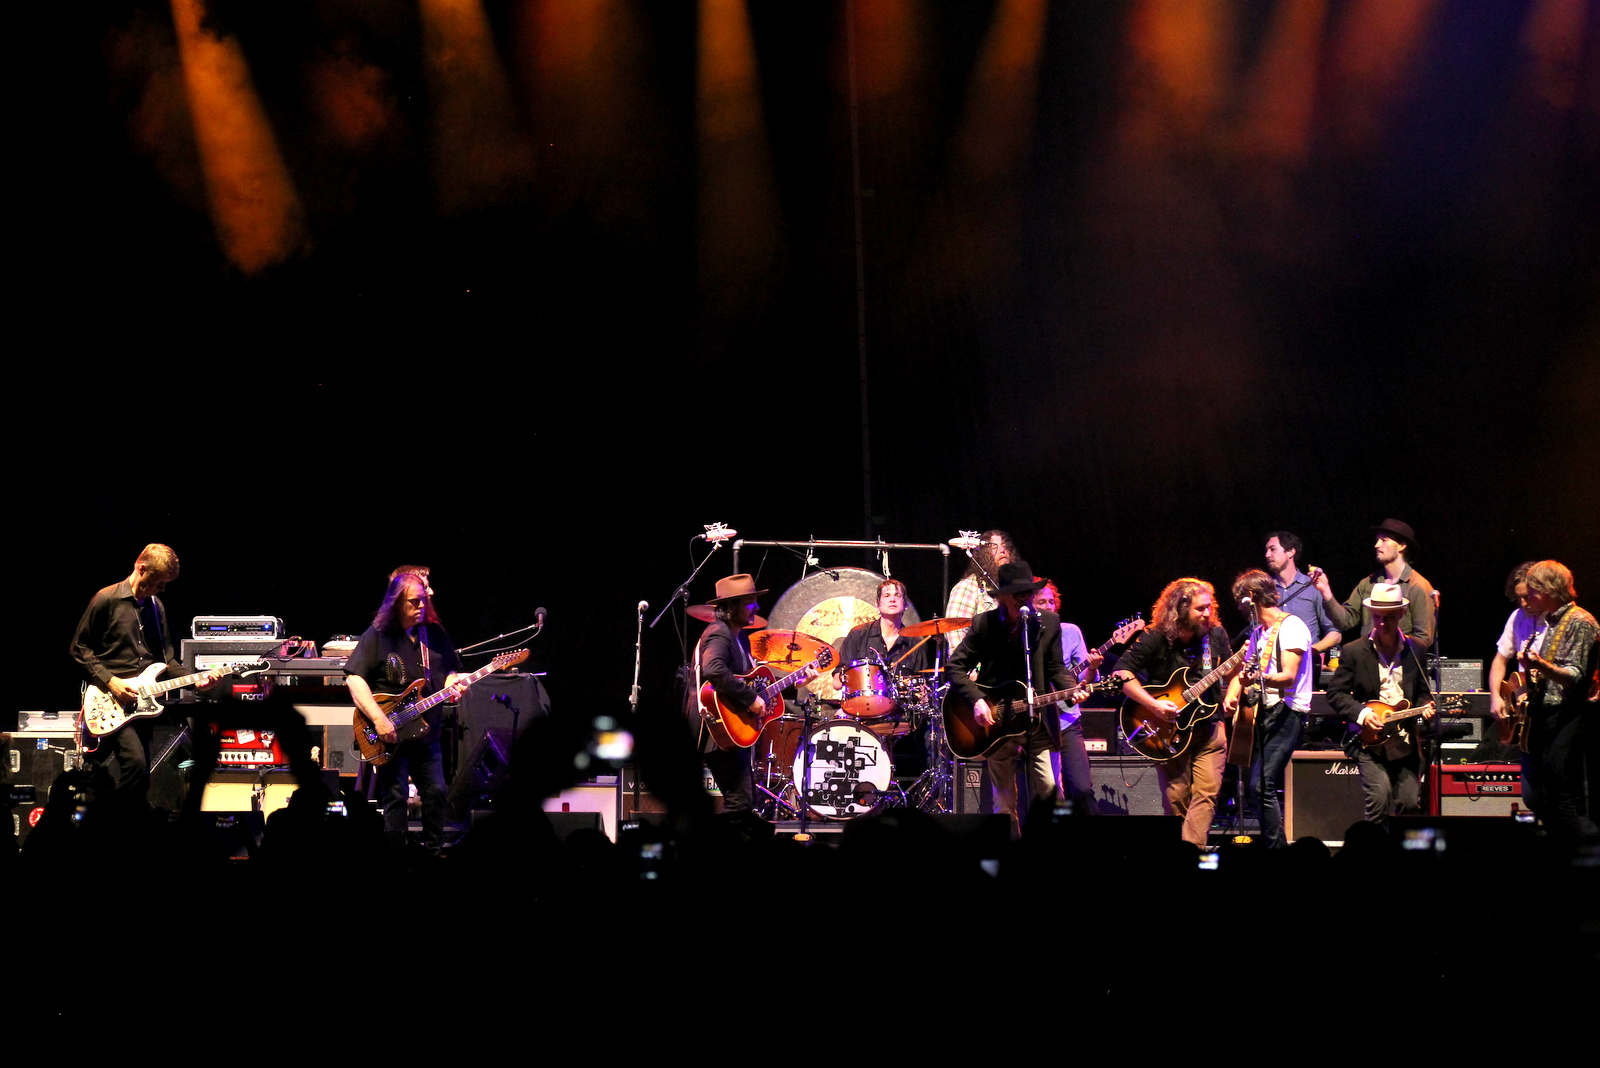 Wilco w/ Guests- Warren Haynes, Jim James, MMJ, Ryan Bingham, Ian Hunter